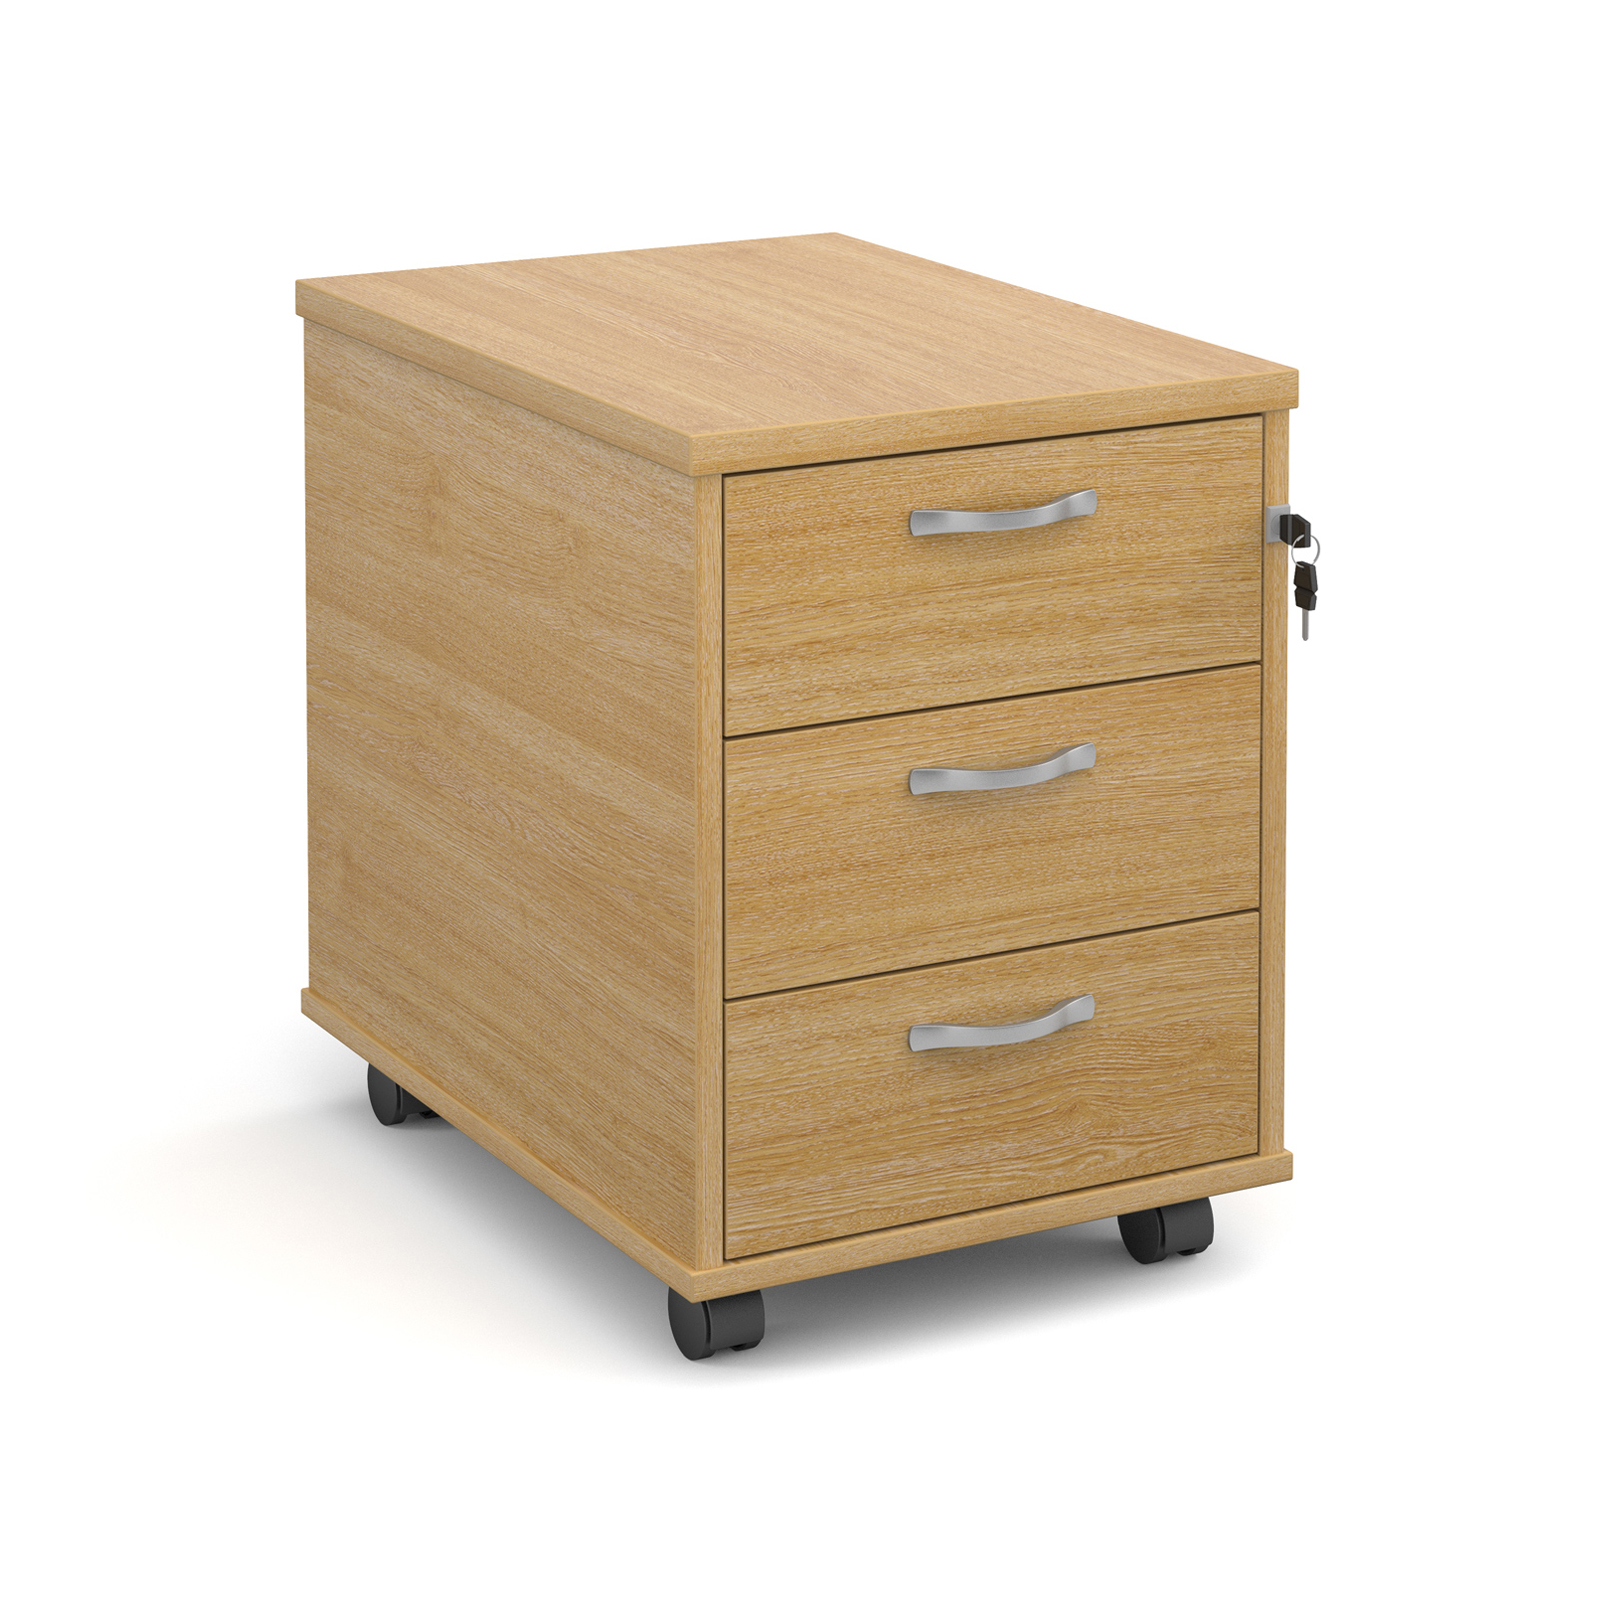 3 Drawer Mobile 3 drawer pedestal with silver handles 600mm deep - oak